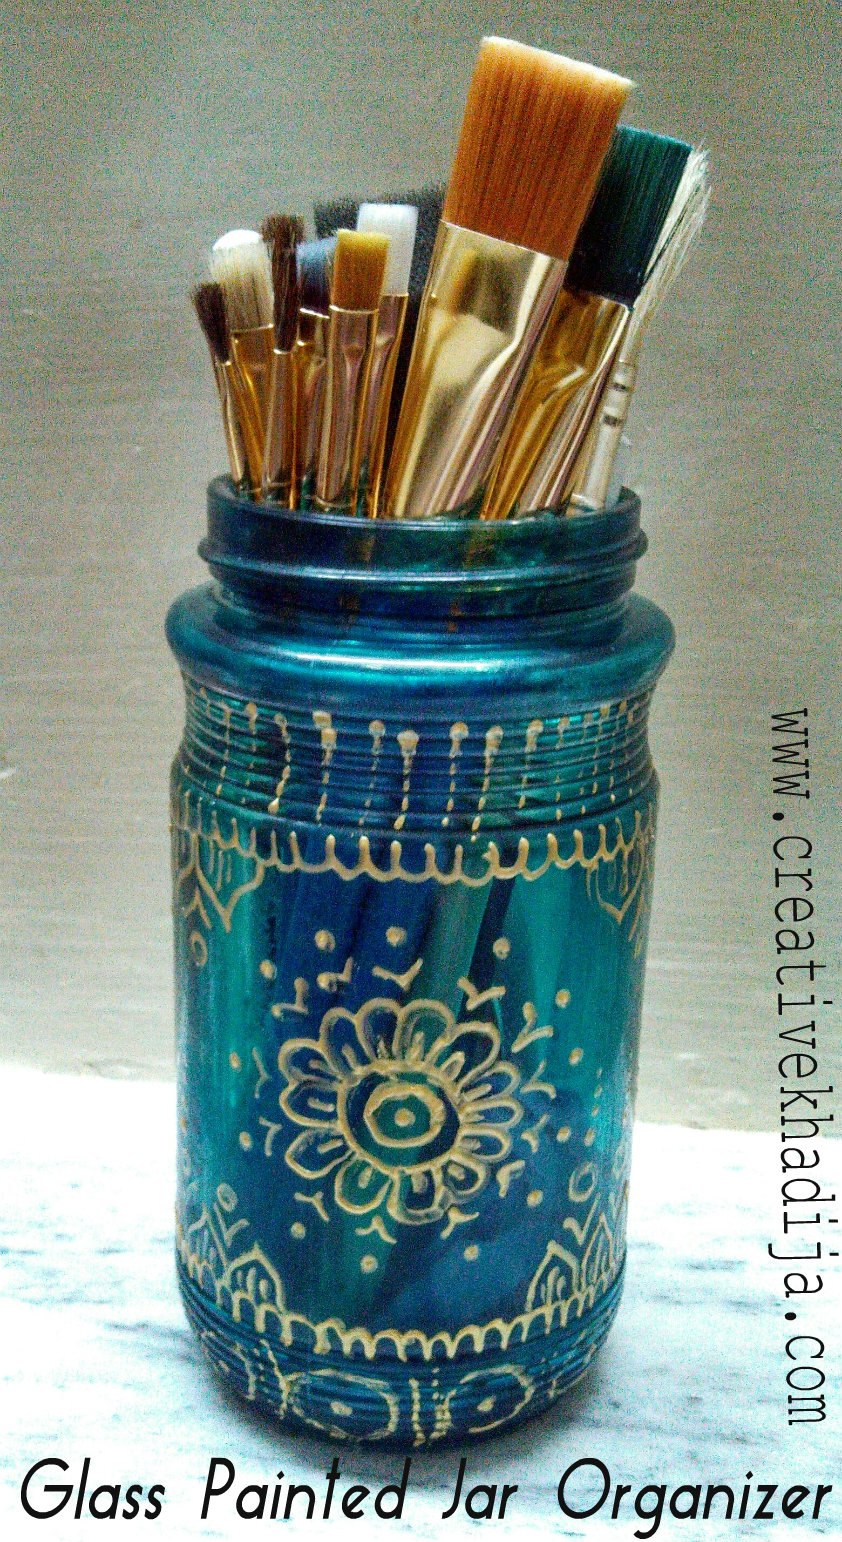 glass painted jar organizer tutorial